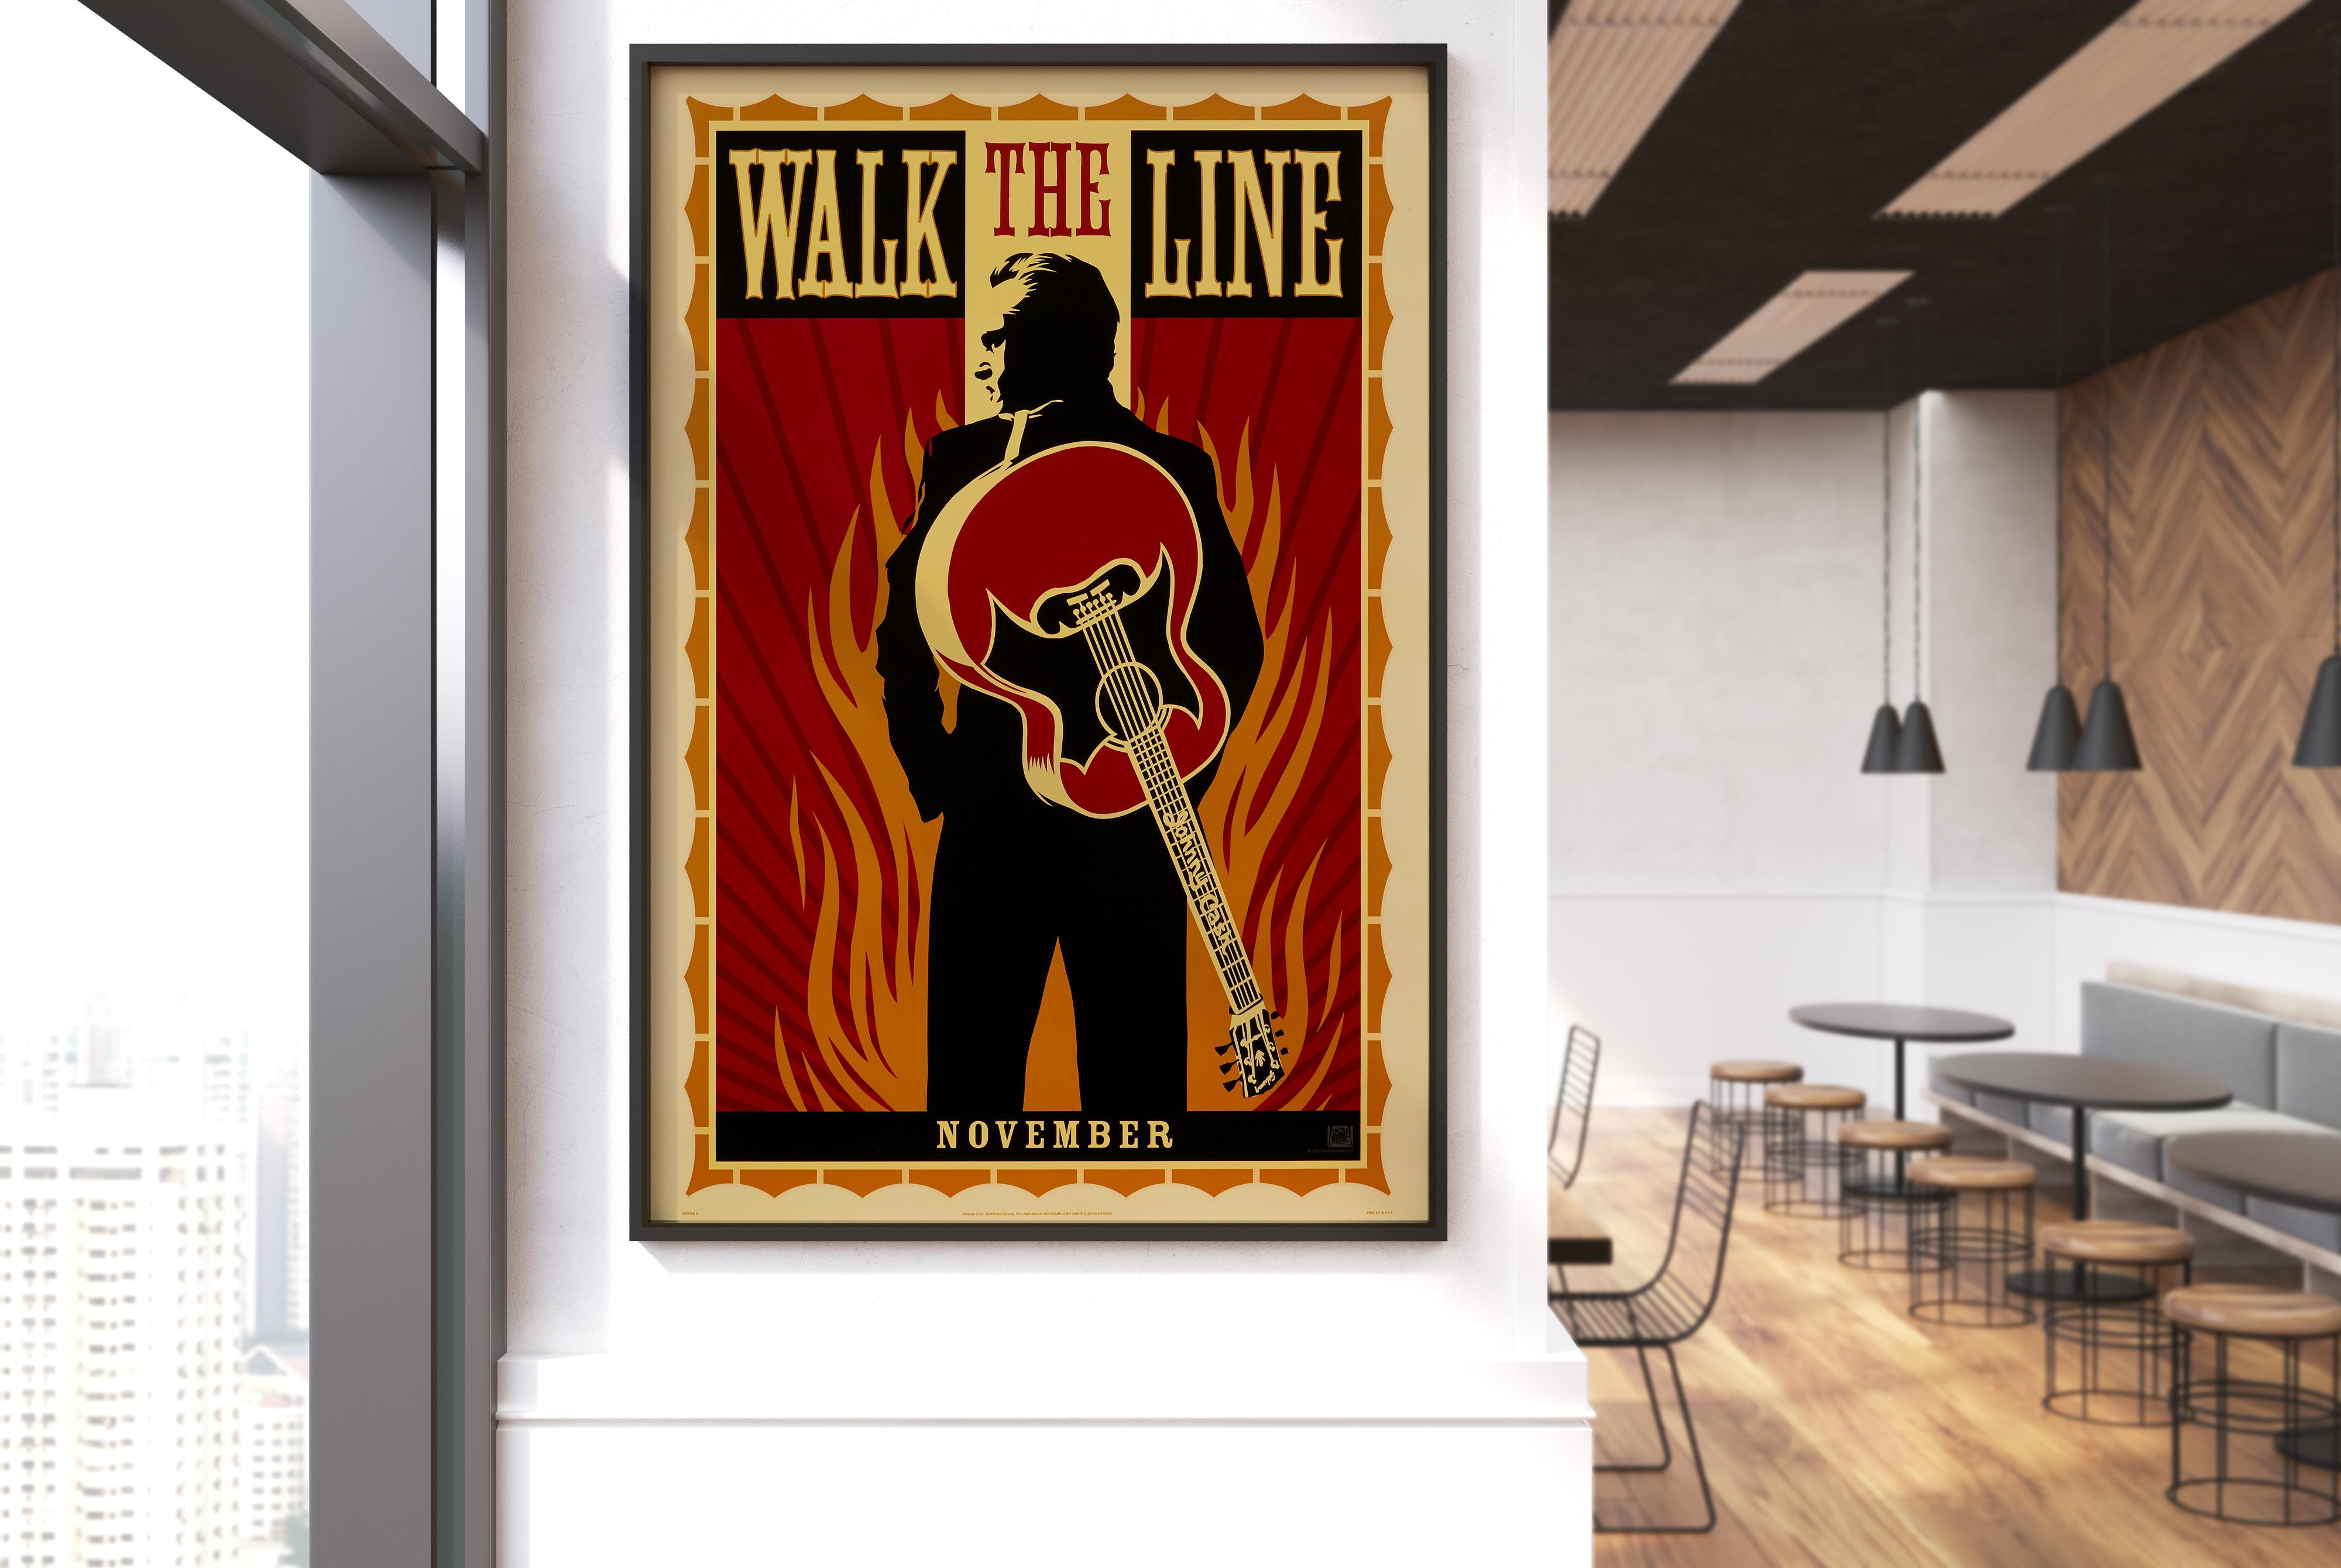 Reese Witherspoon Wall Print POSTER Affiche 68686 Walk the Line Joaquin Phoenix